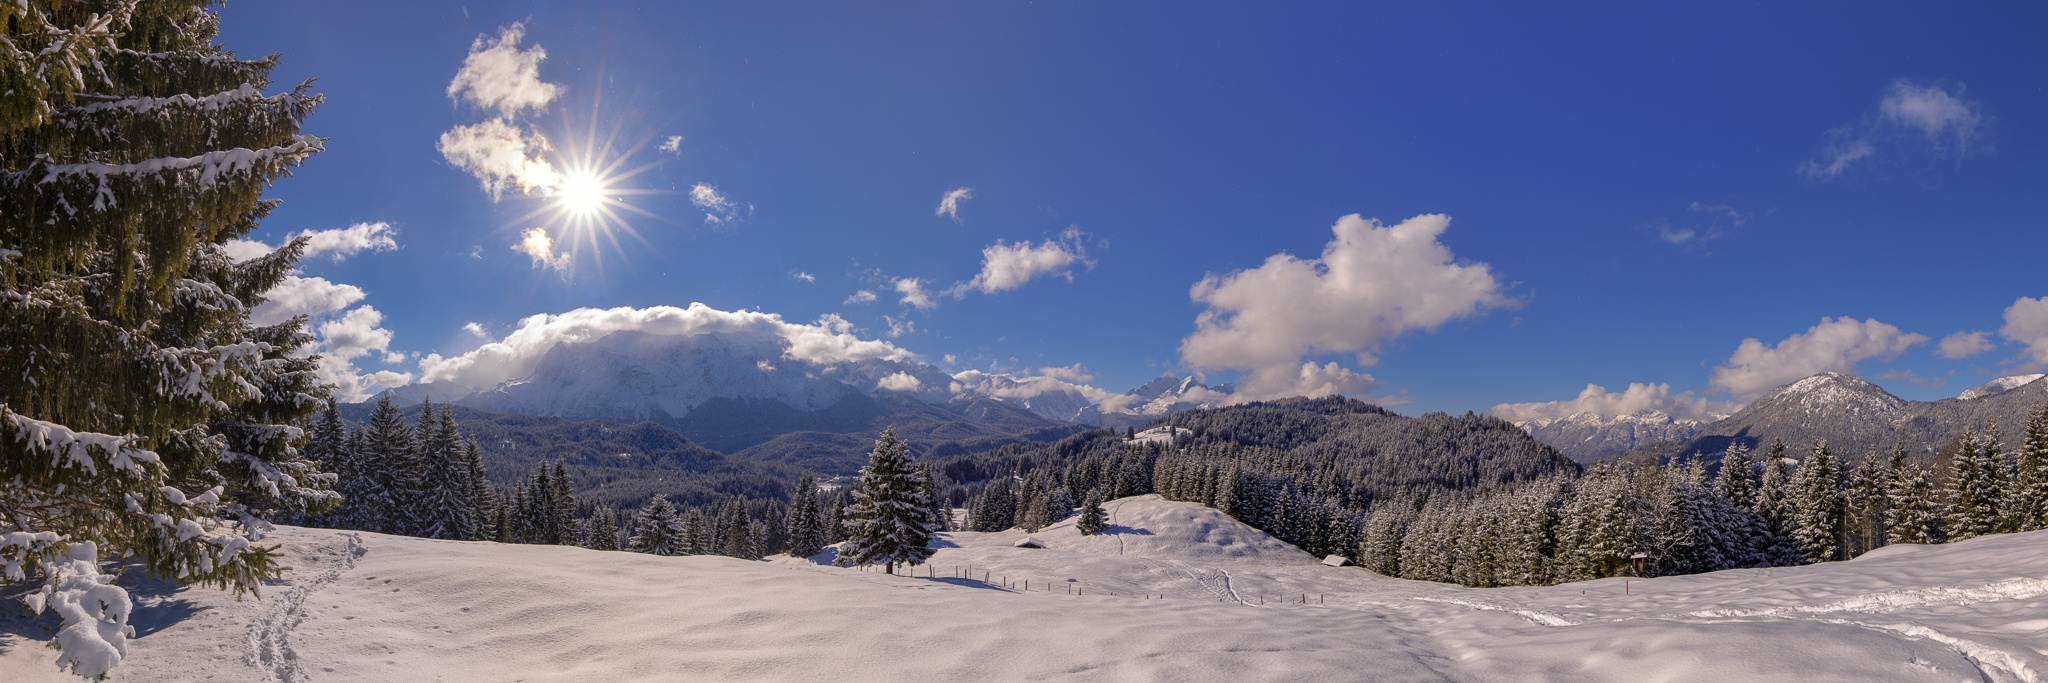 Elmau-Winter-Panorama